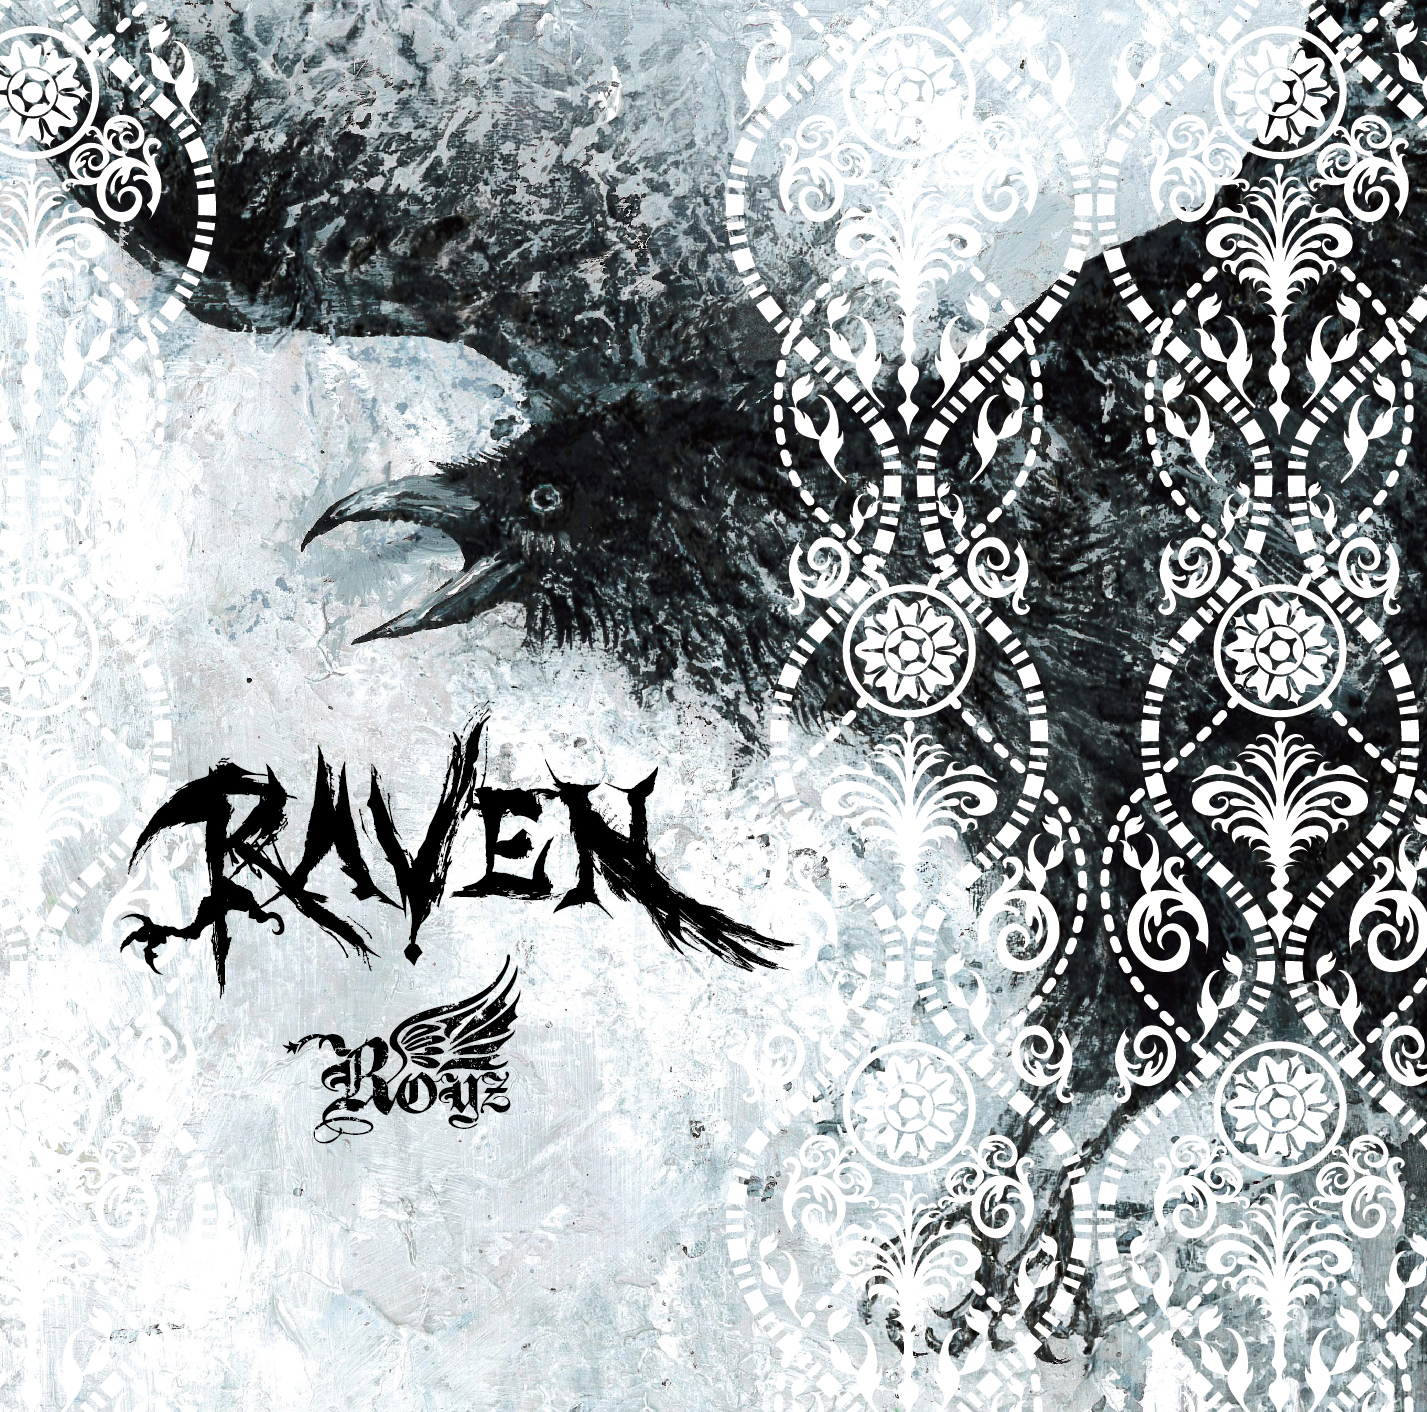 Royz 13th maxi single 「RAVEN」Btype